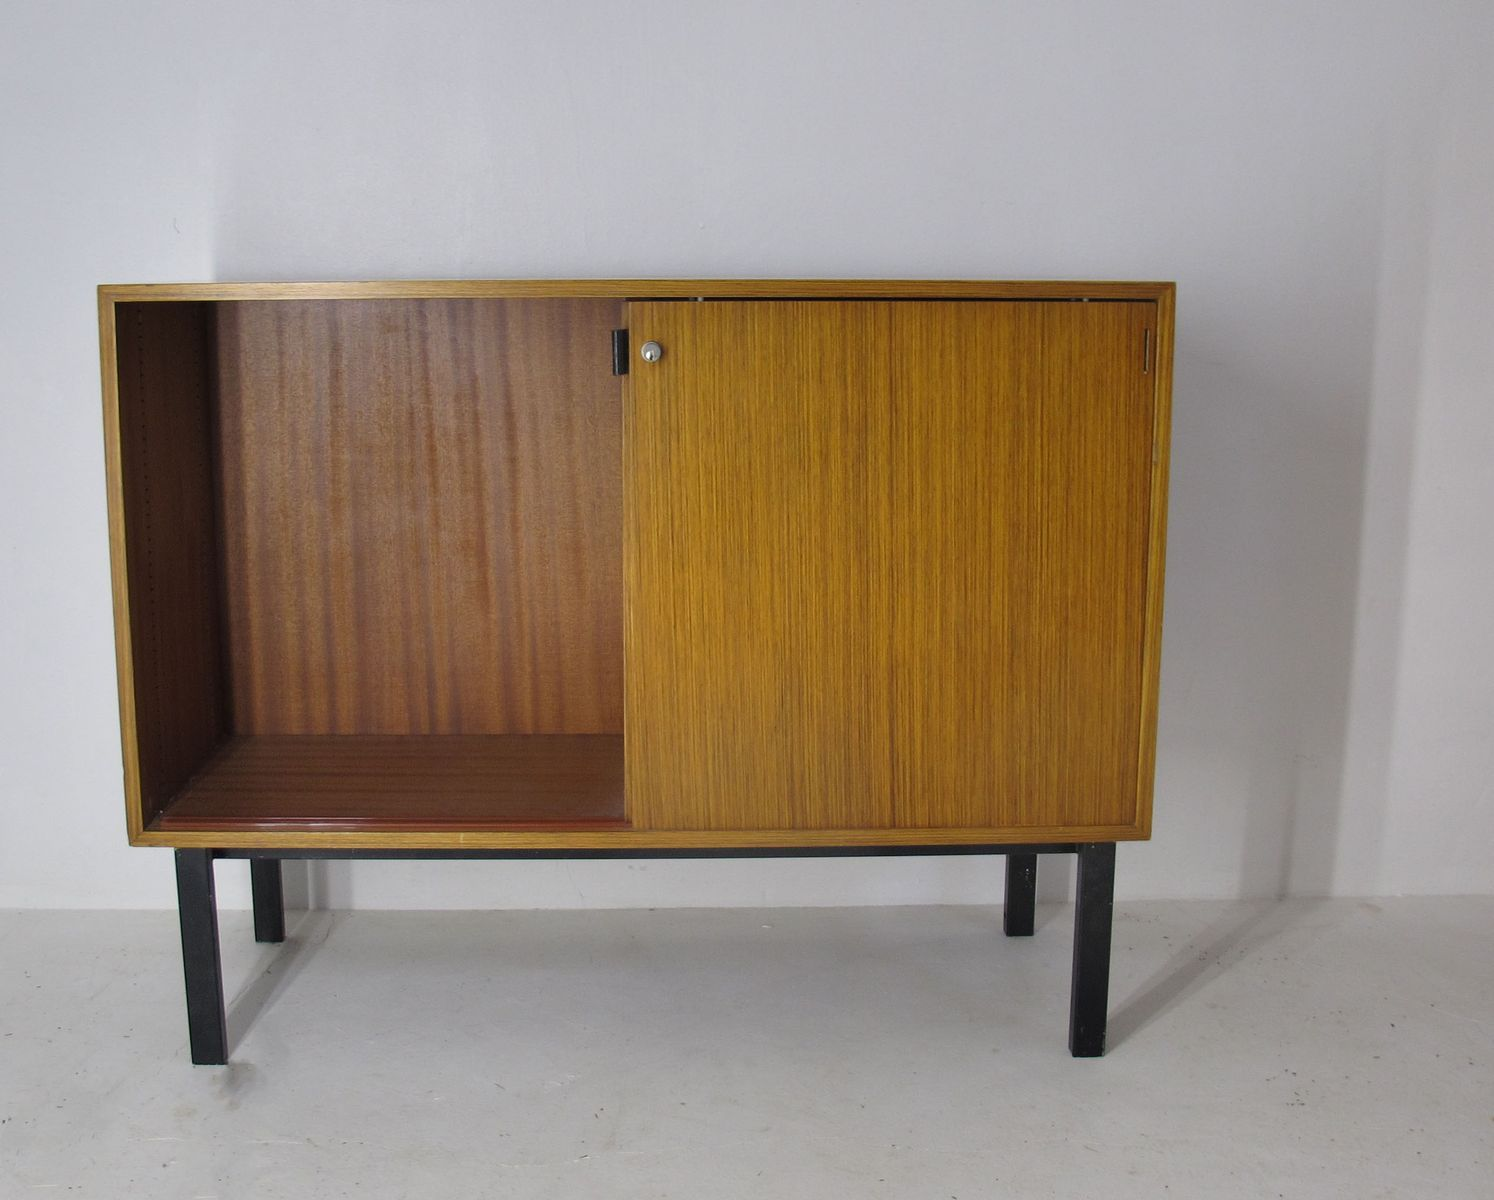 Walnut sideboard from teamwork s furniture systems 1950s for Furniture 1950